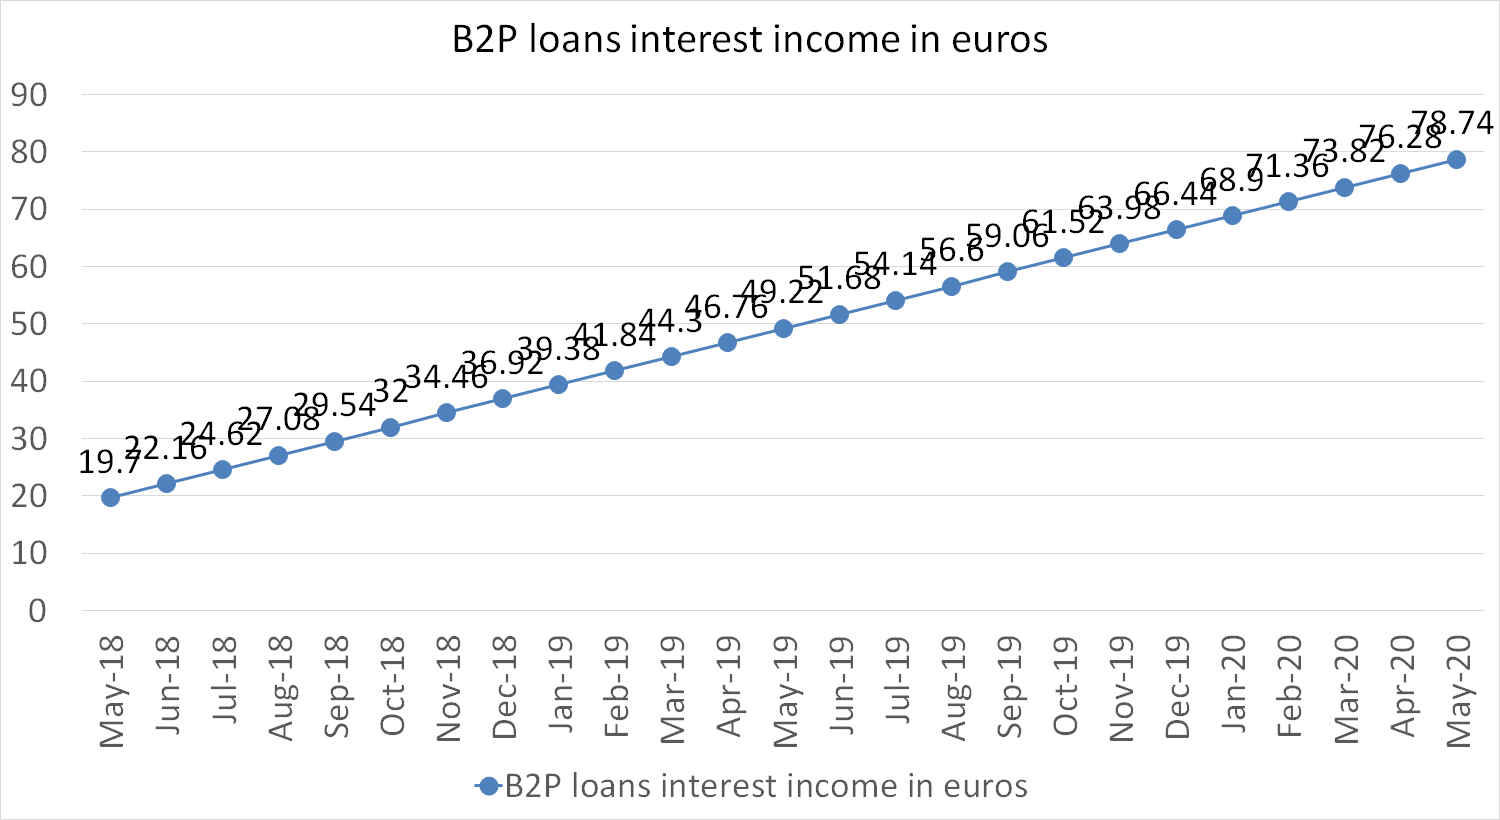 B2P loans interest income in euros may 2020